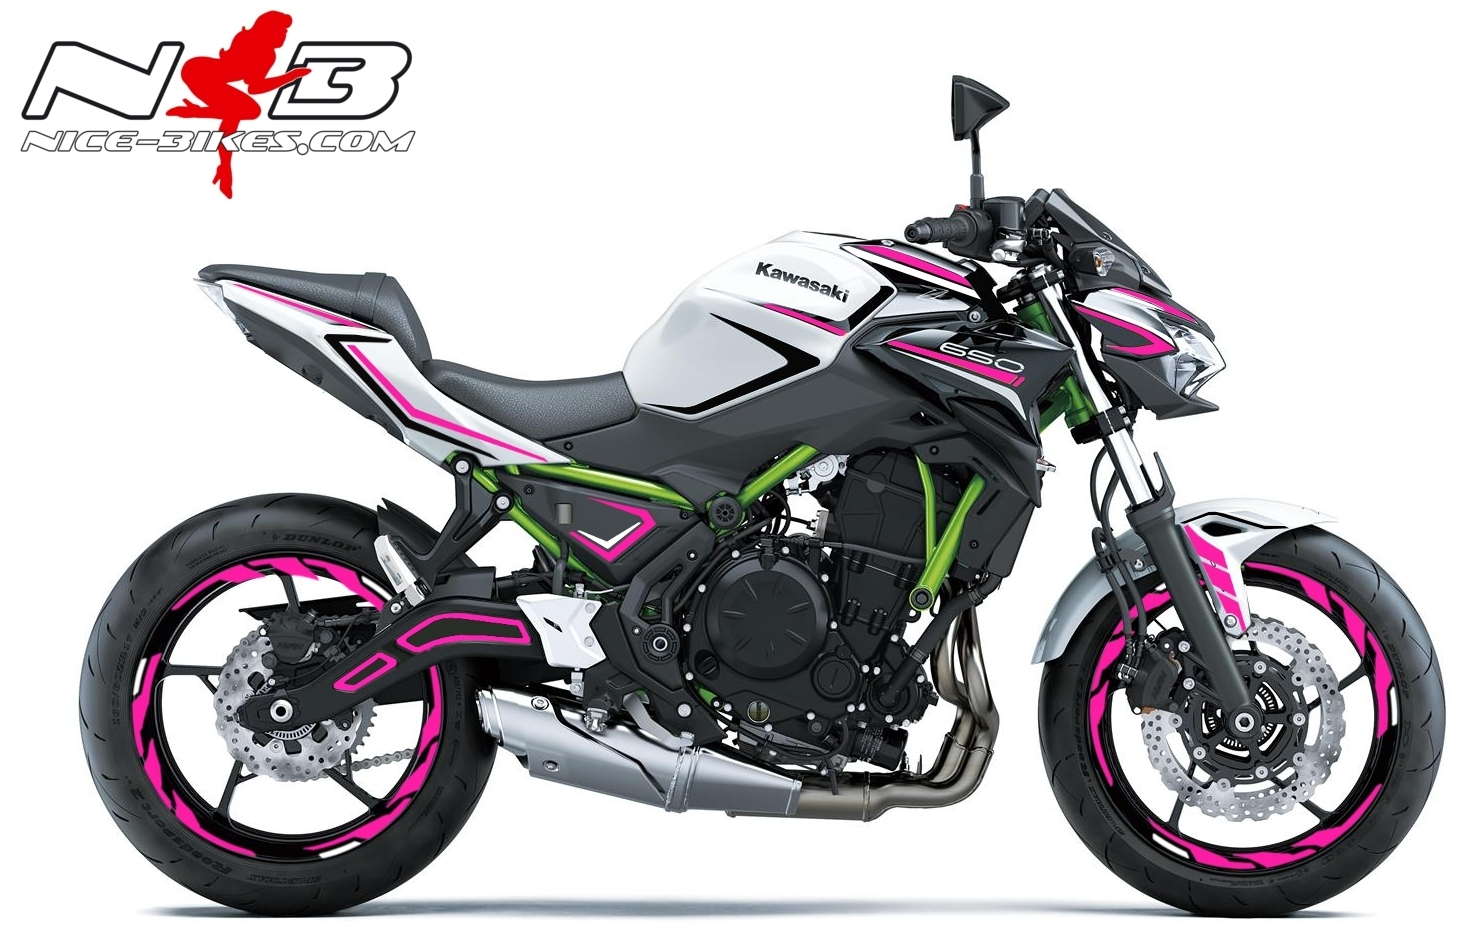 Foliendesign Kawasaki Z650 Bj. 2020 Pretty Pink